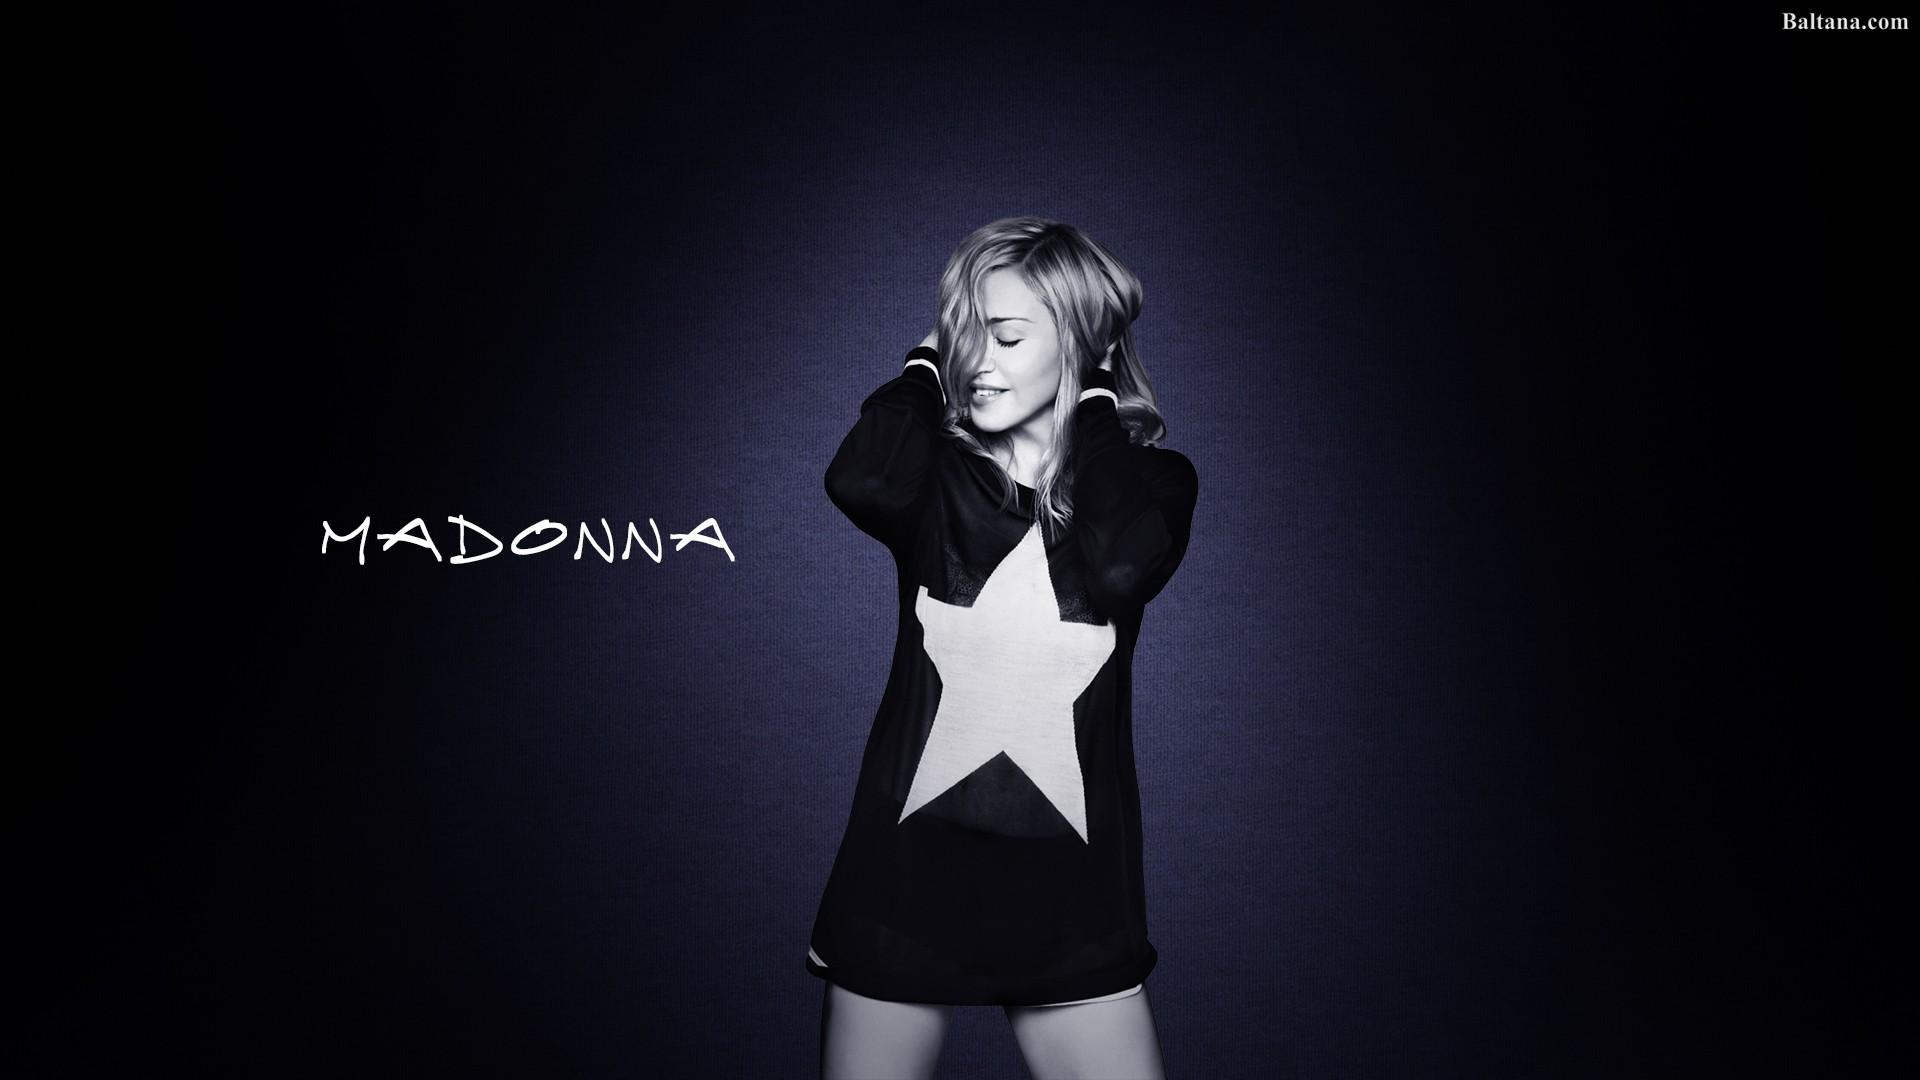 Madonna Wallpapers 29875